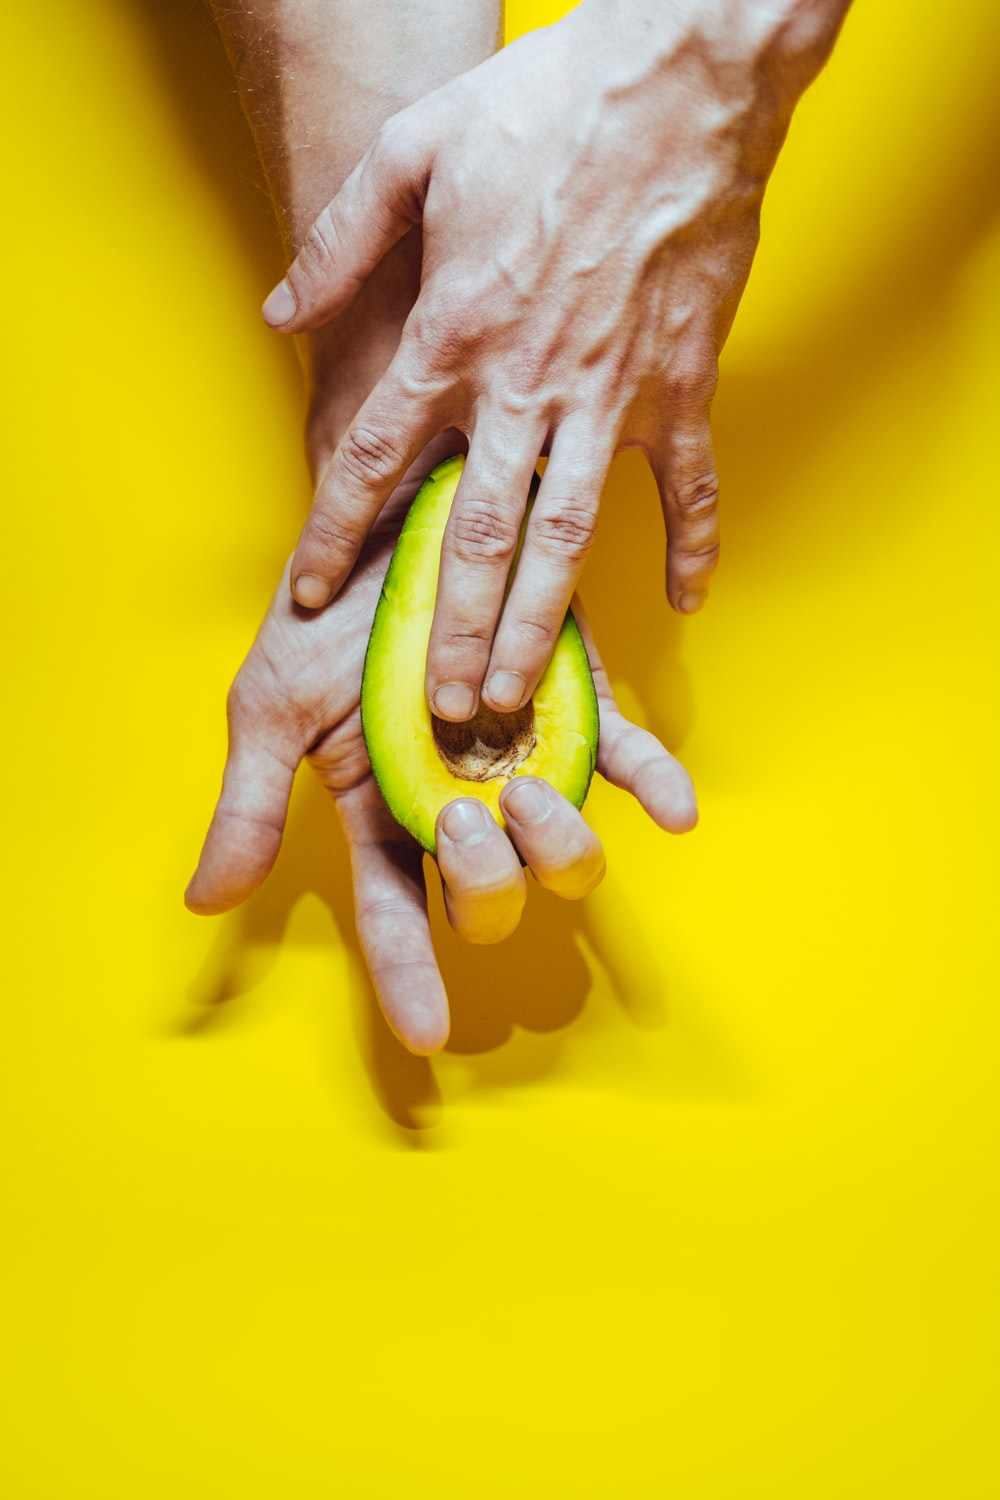 persons hand on yellow surface